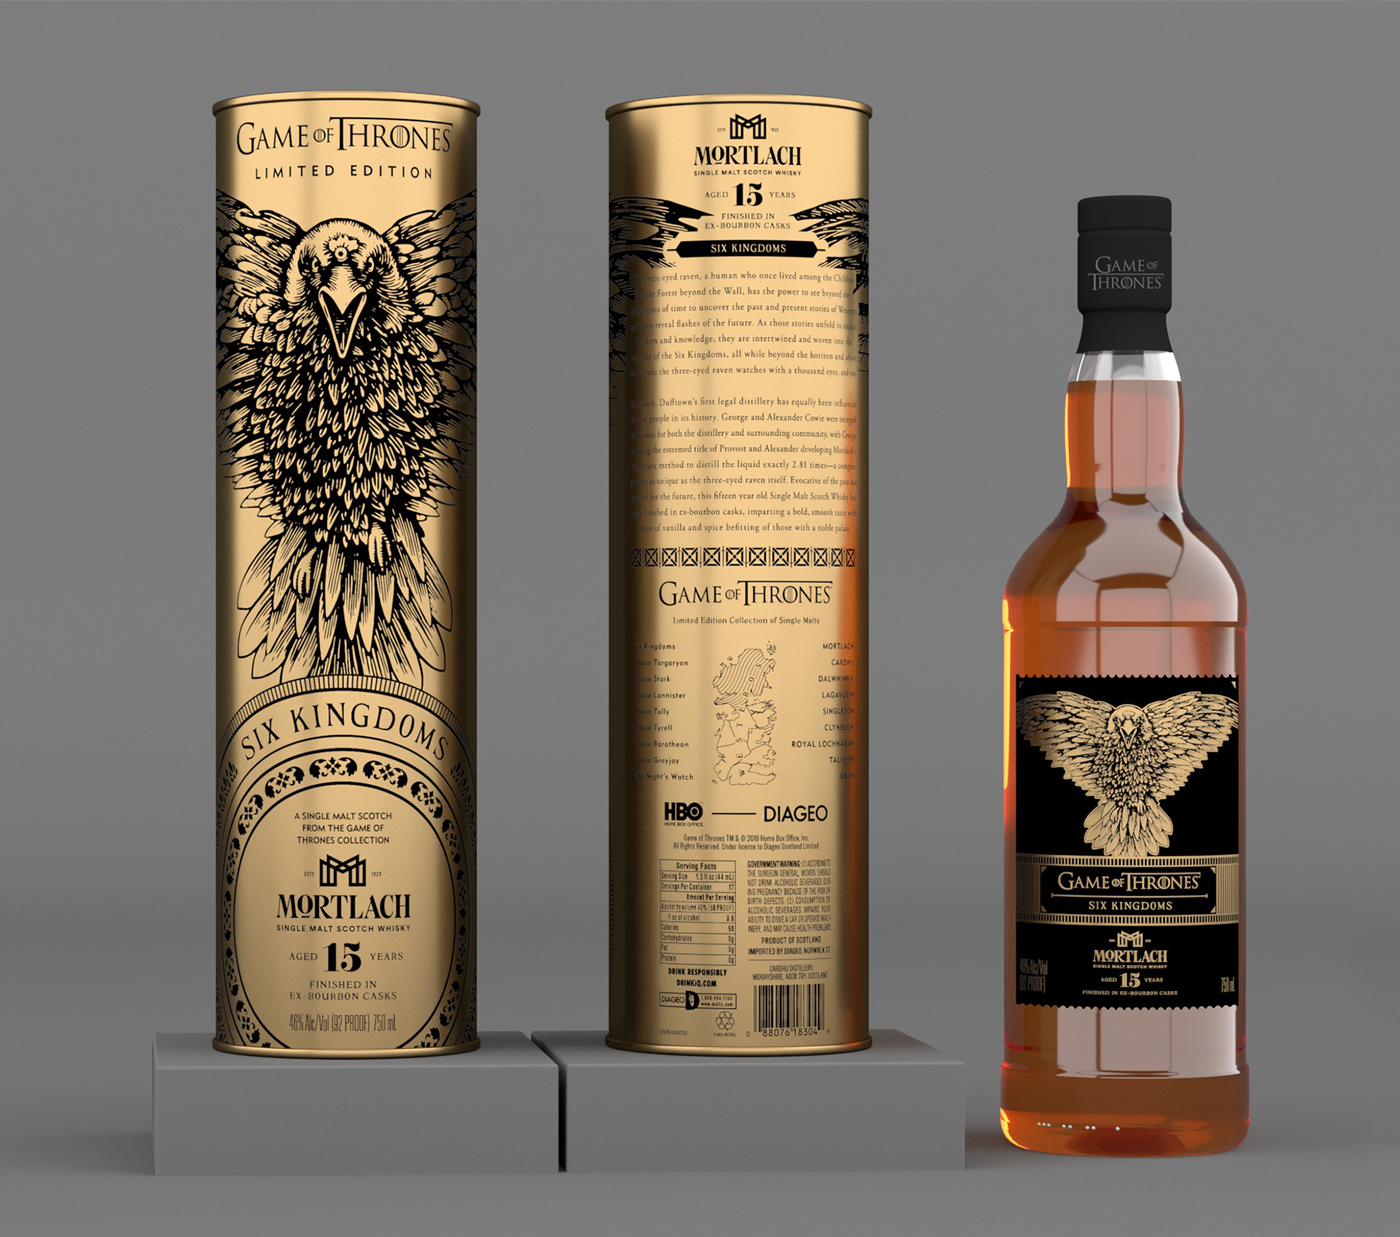 Game of Thrones Mortlach six kingdoms